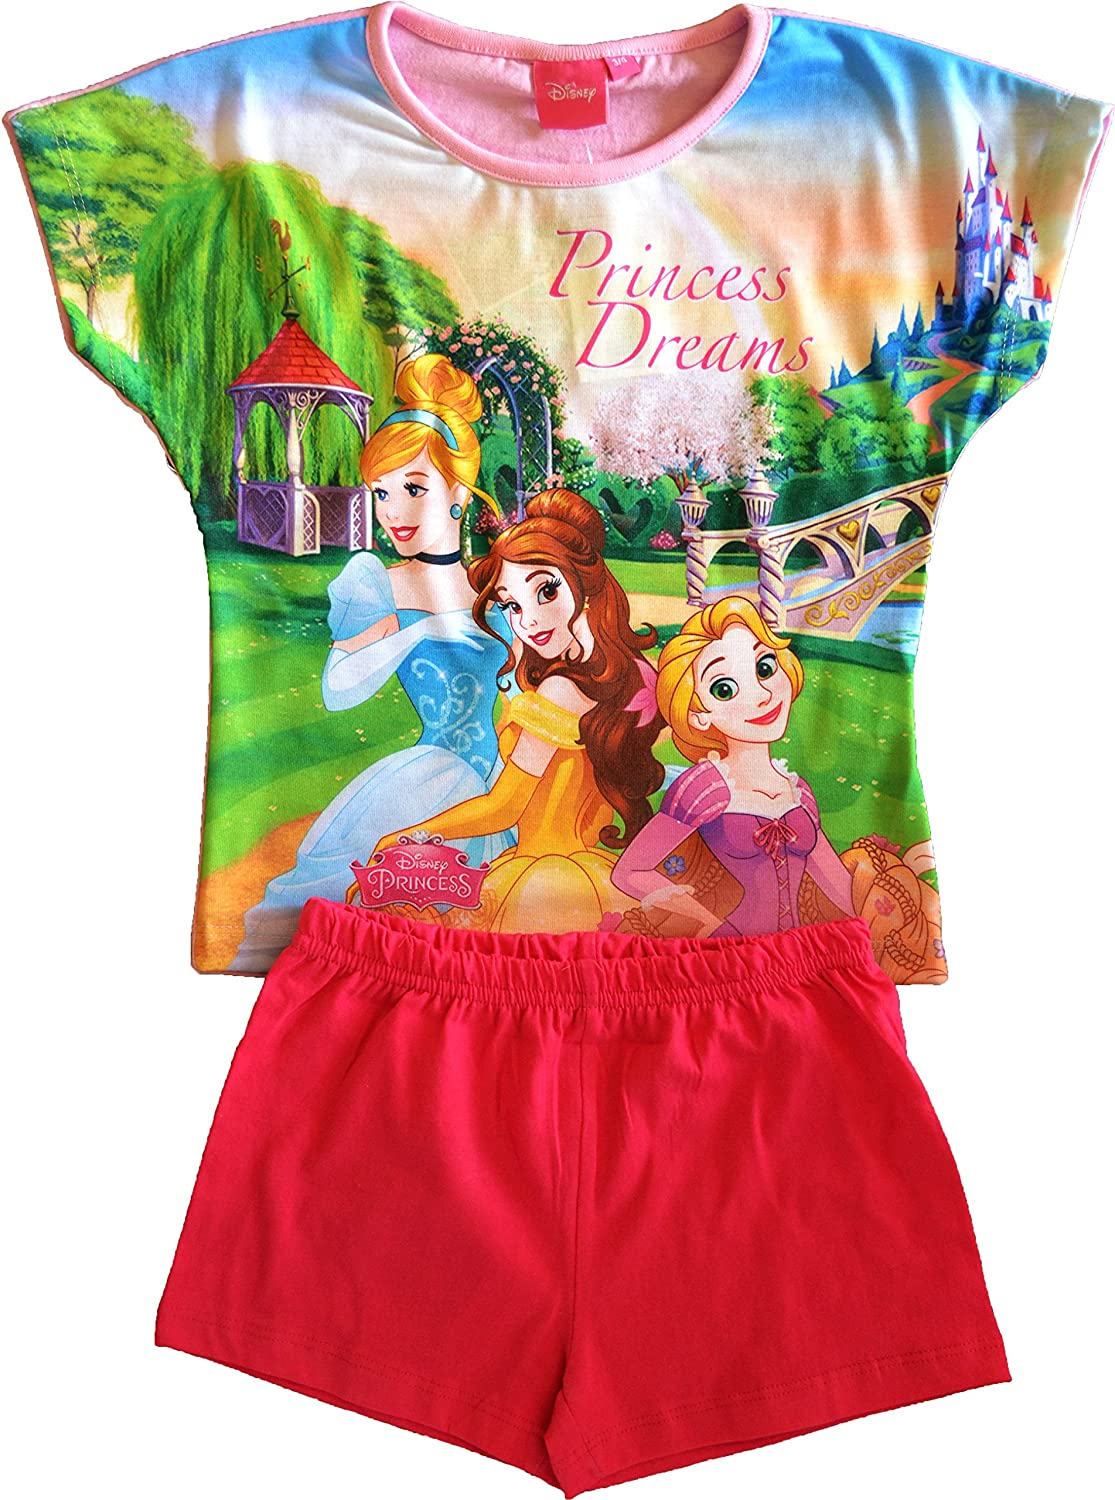 Girls Disney Princess Short Pyjamas Sizes 3 to 10 Years Pink 7-8 Years